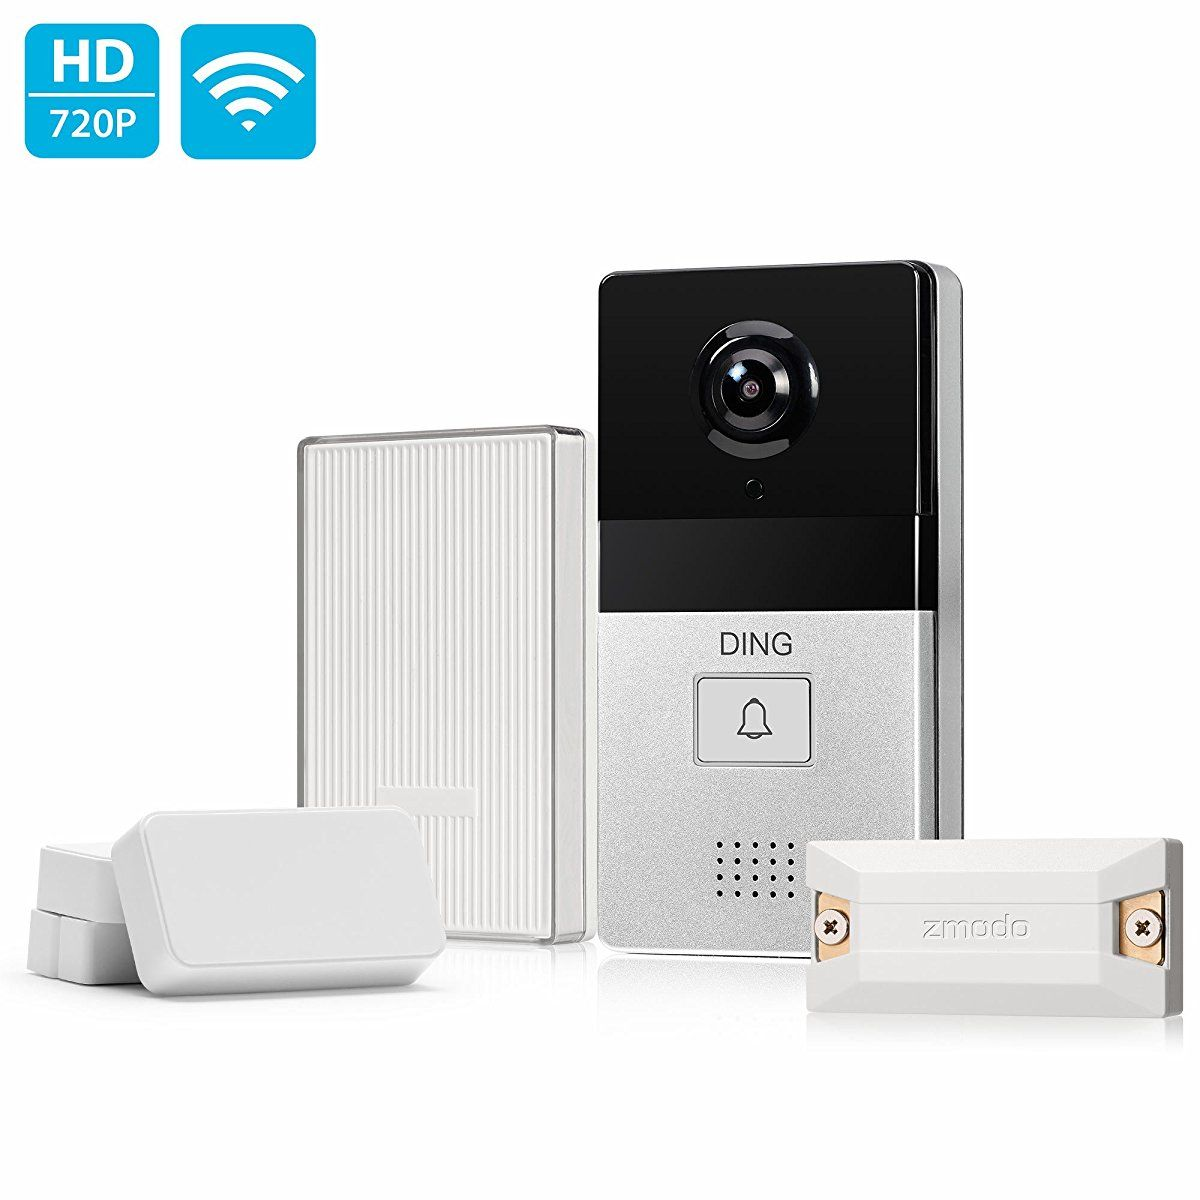 DING WiFi Enabled Video Doorbell Package with Smart Home